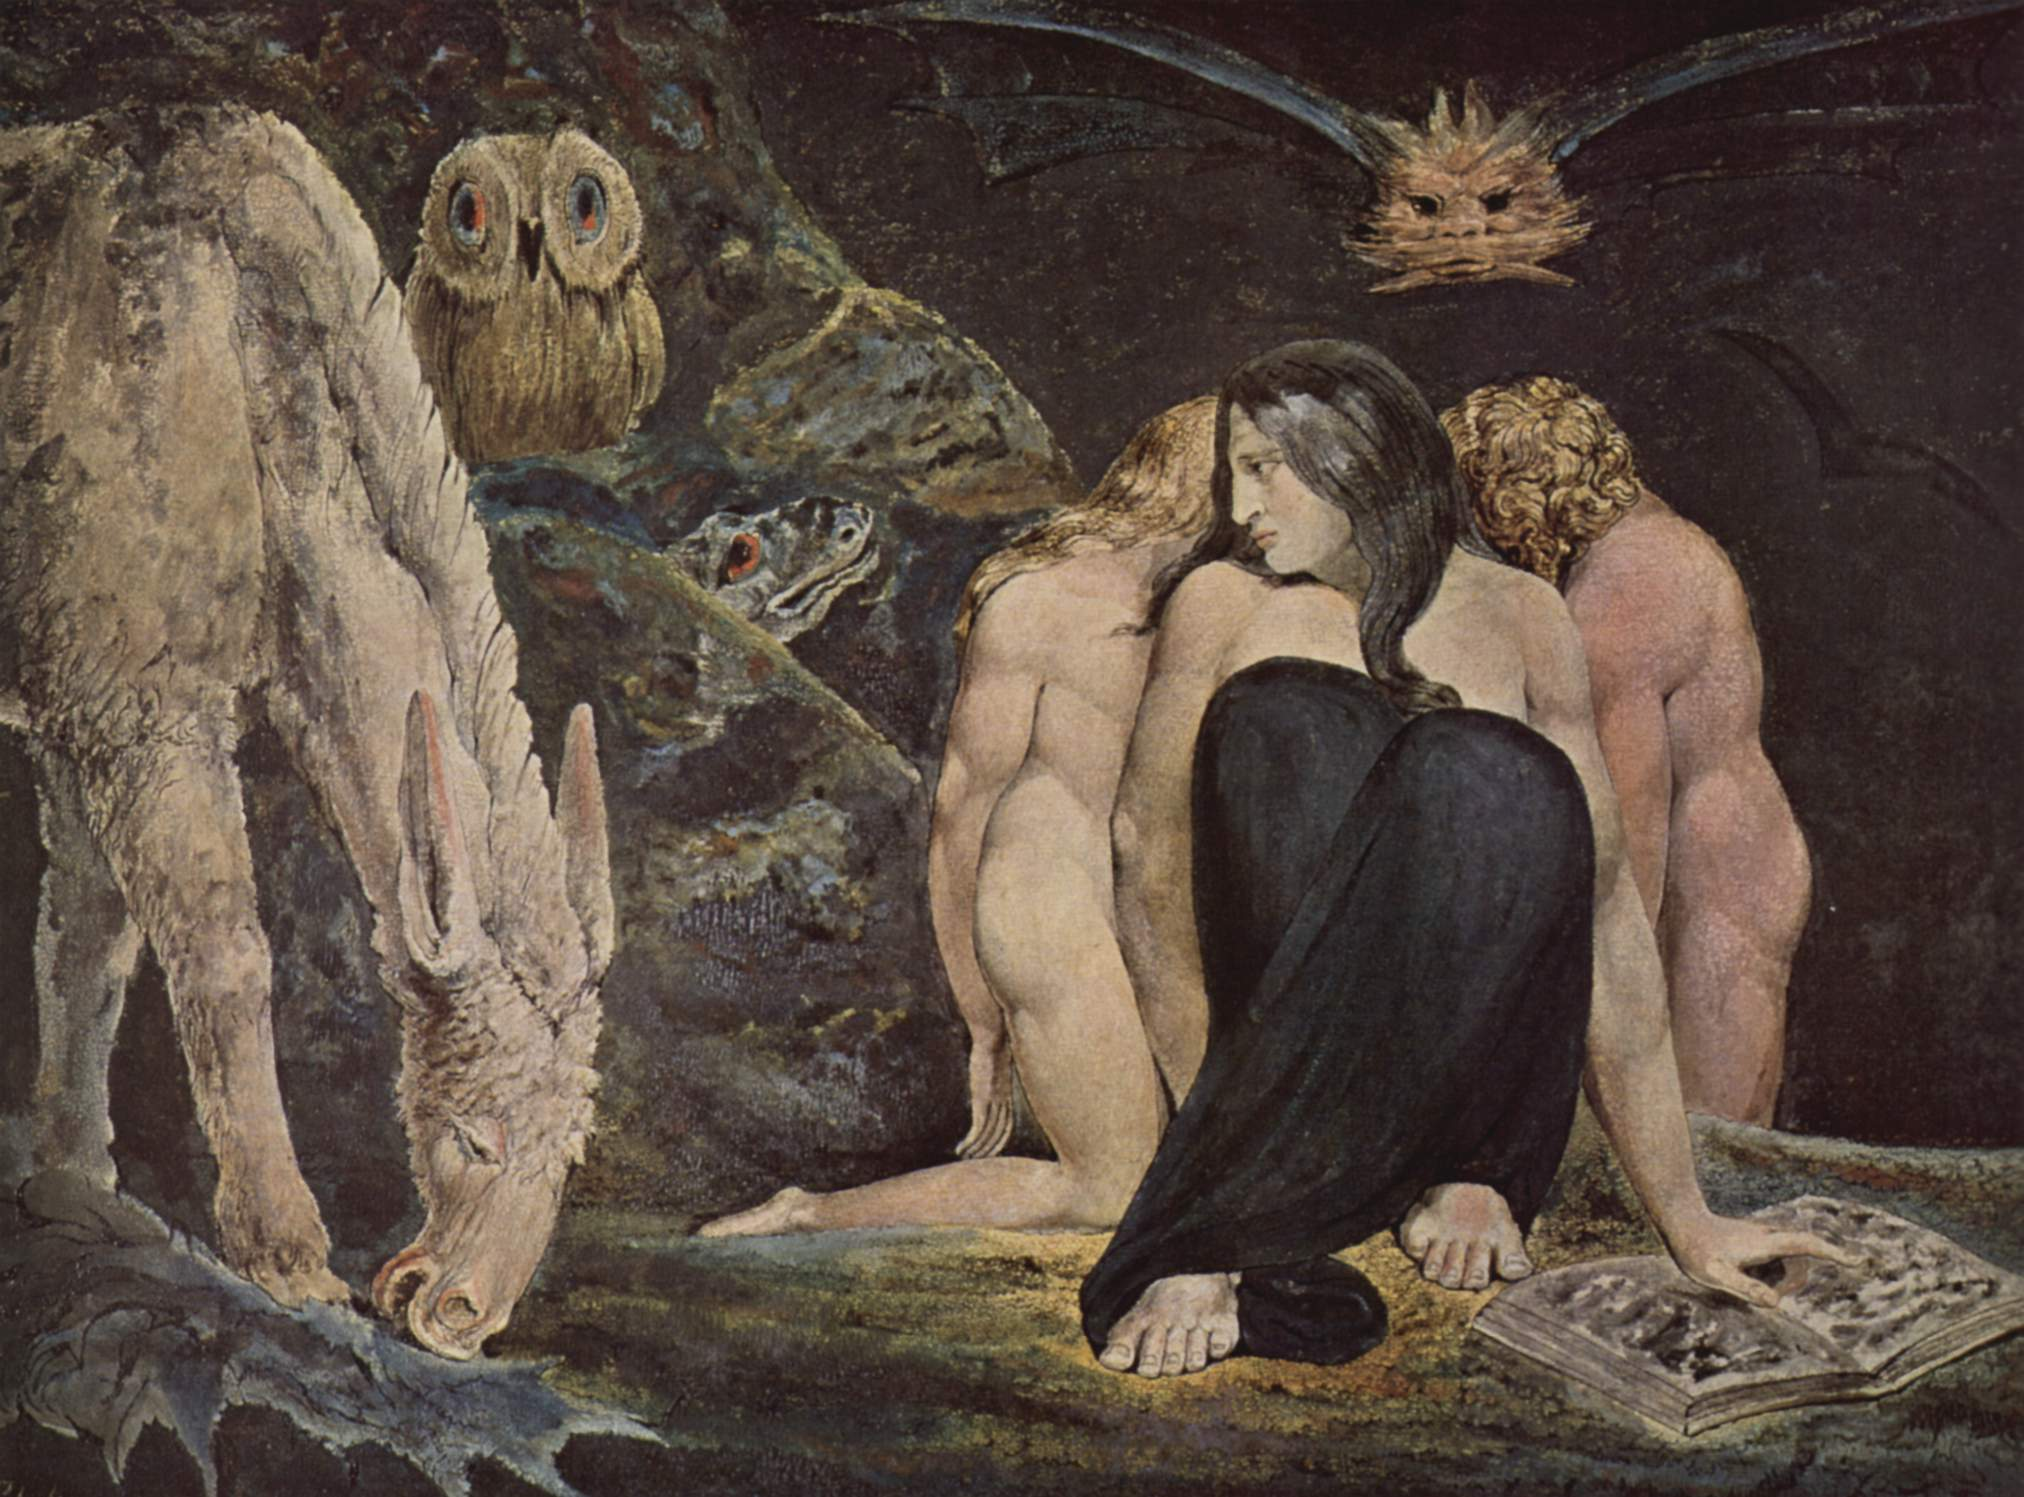 William Blake, The Triple Hecate, 1995